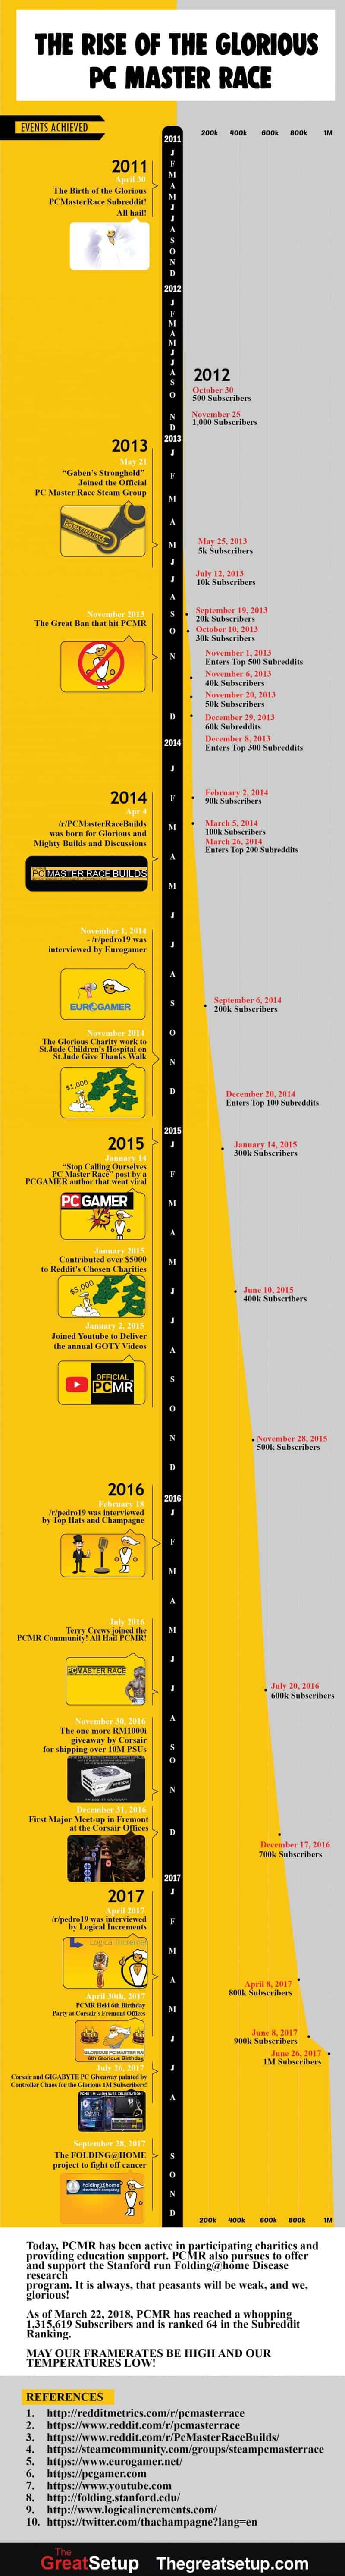 The Rise of the Glorious PC Master Race-01